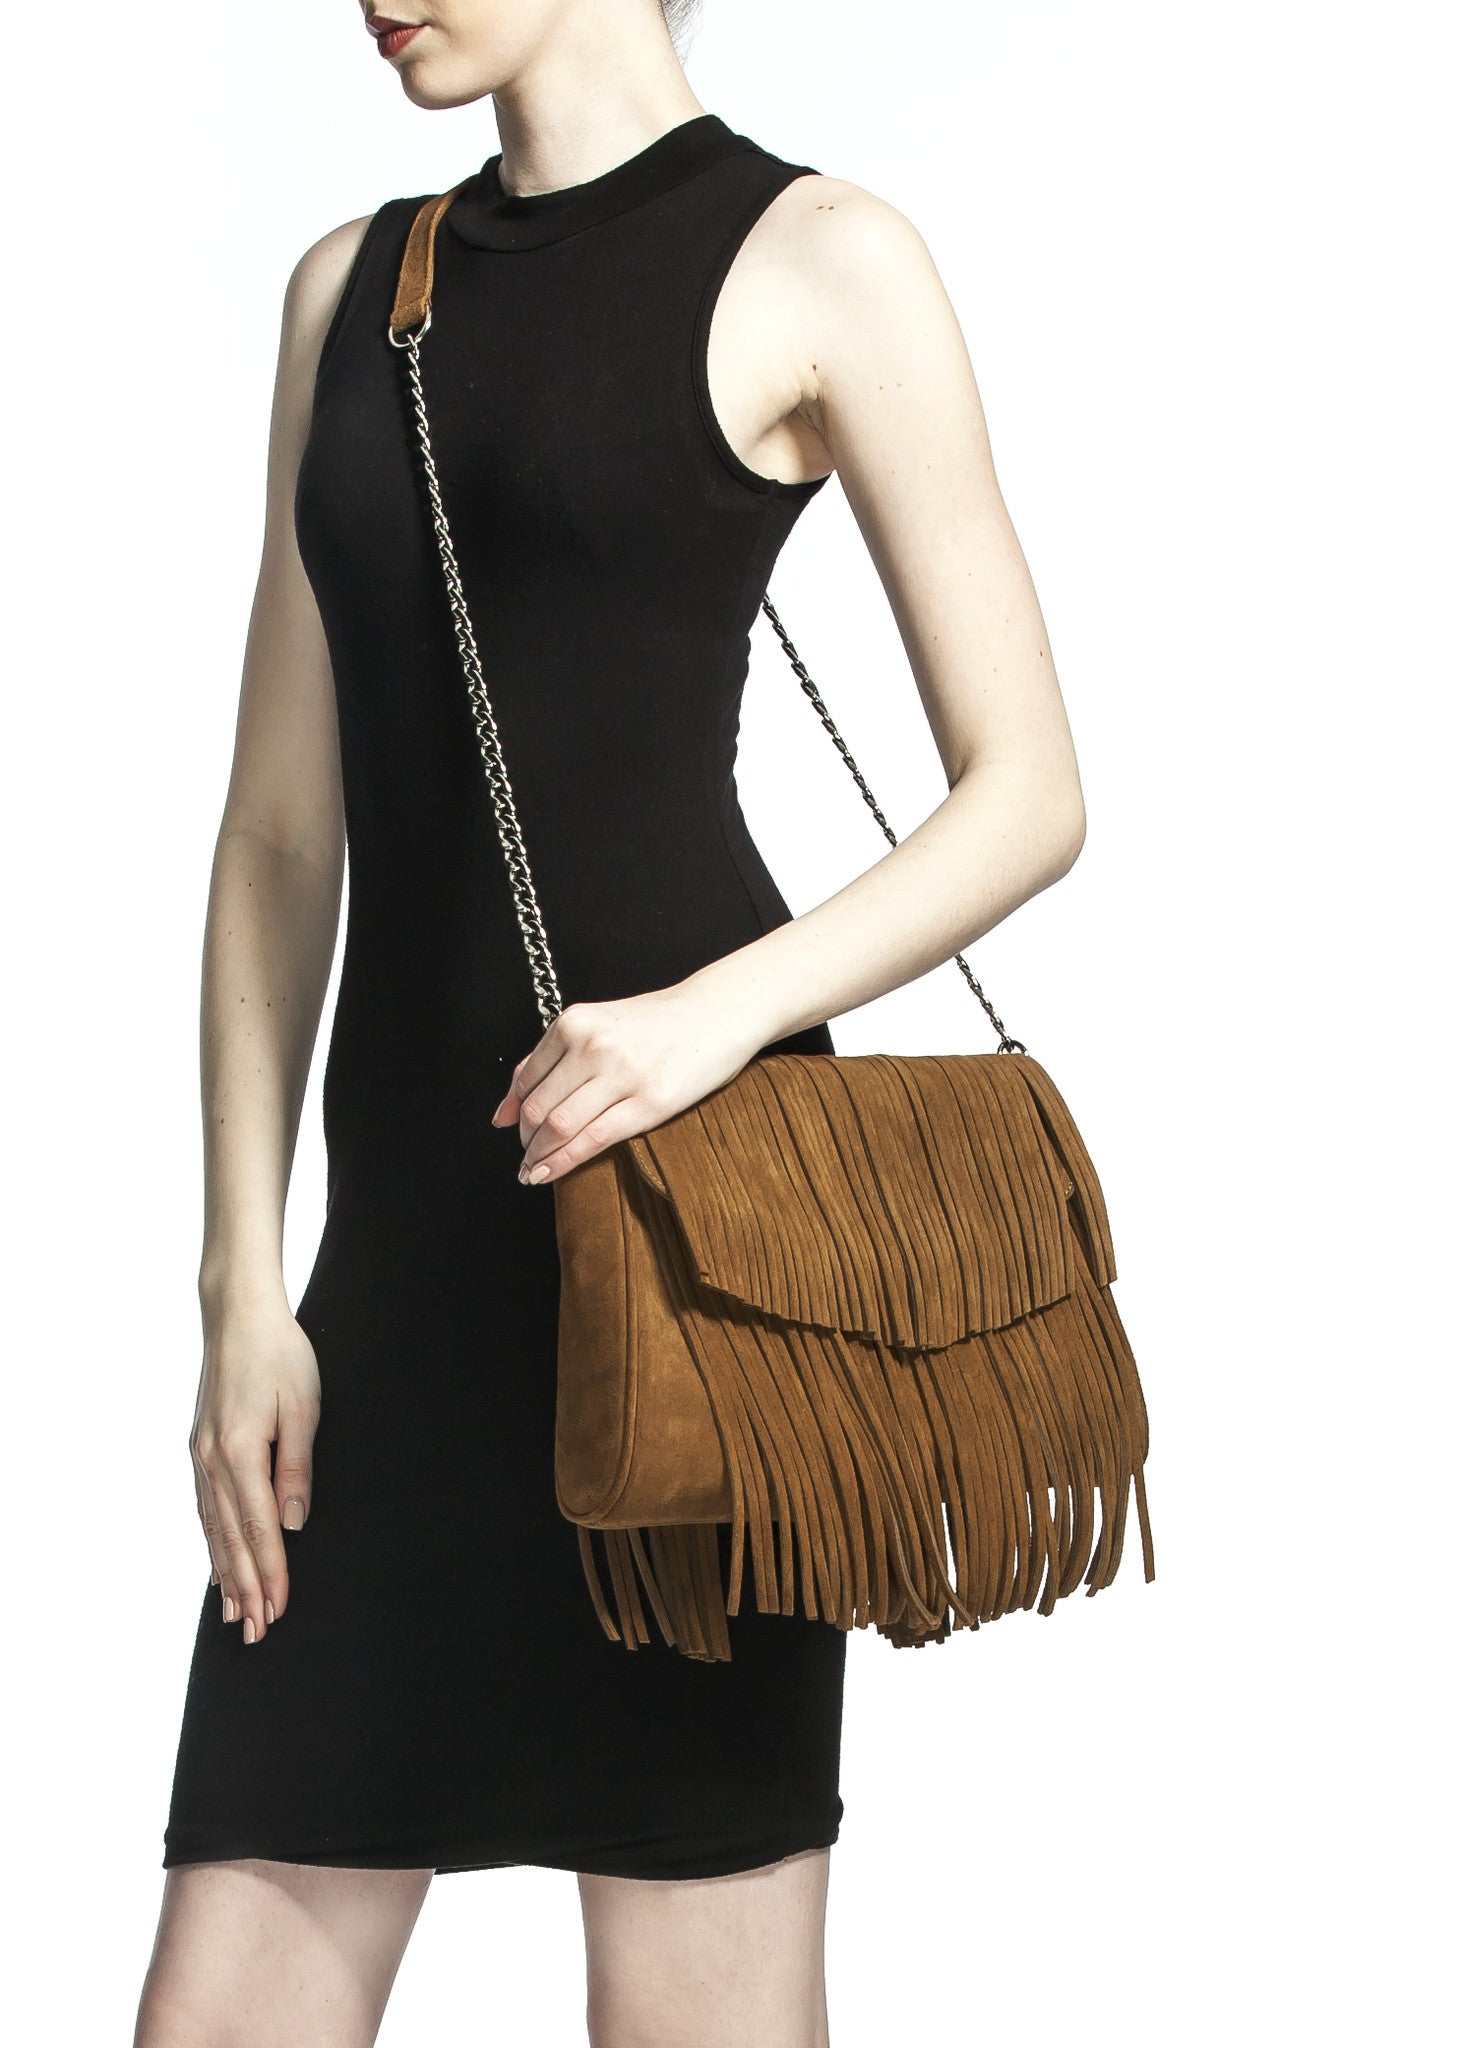 Mel Boteri | Tan Suede Leather 'Taylea' Fringed Handbag | Model